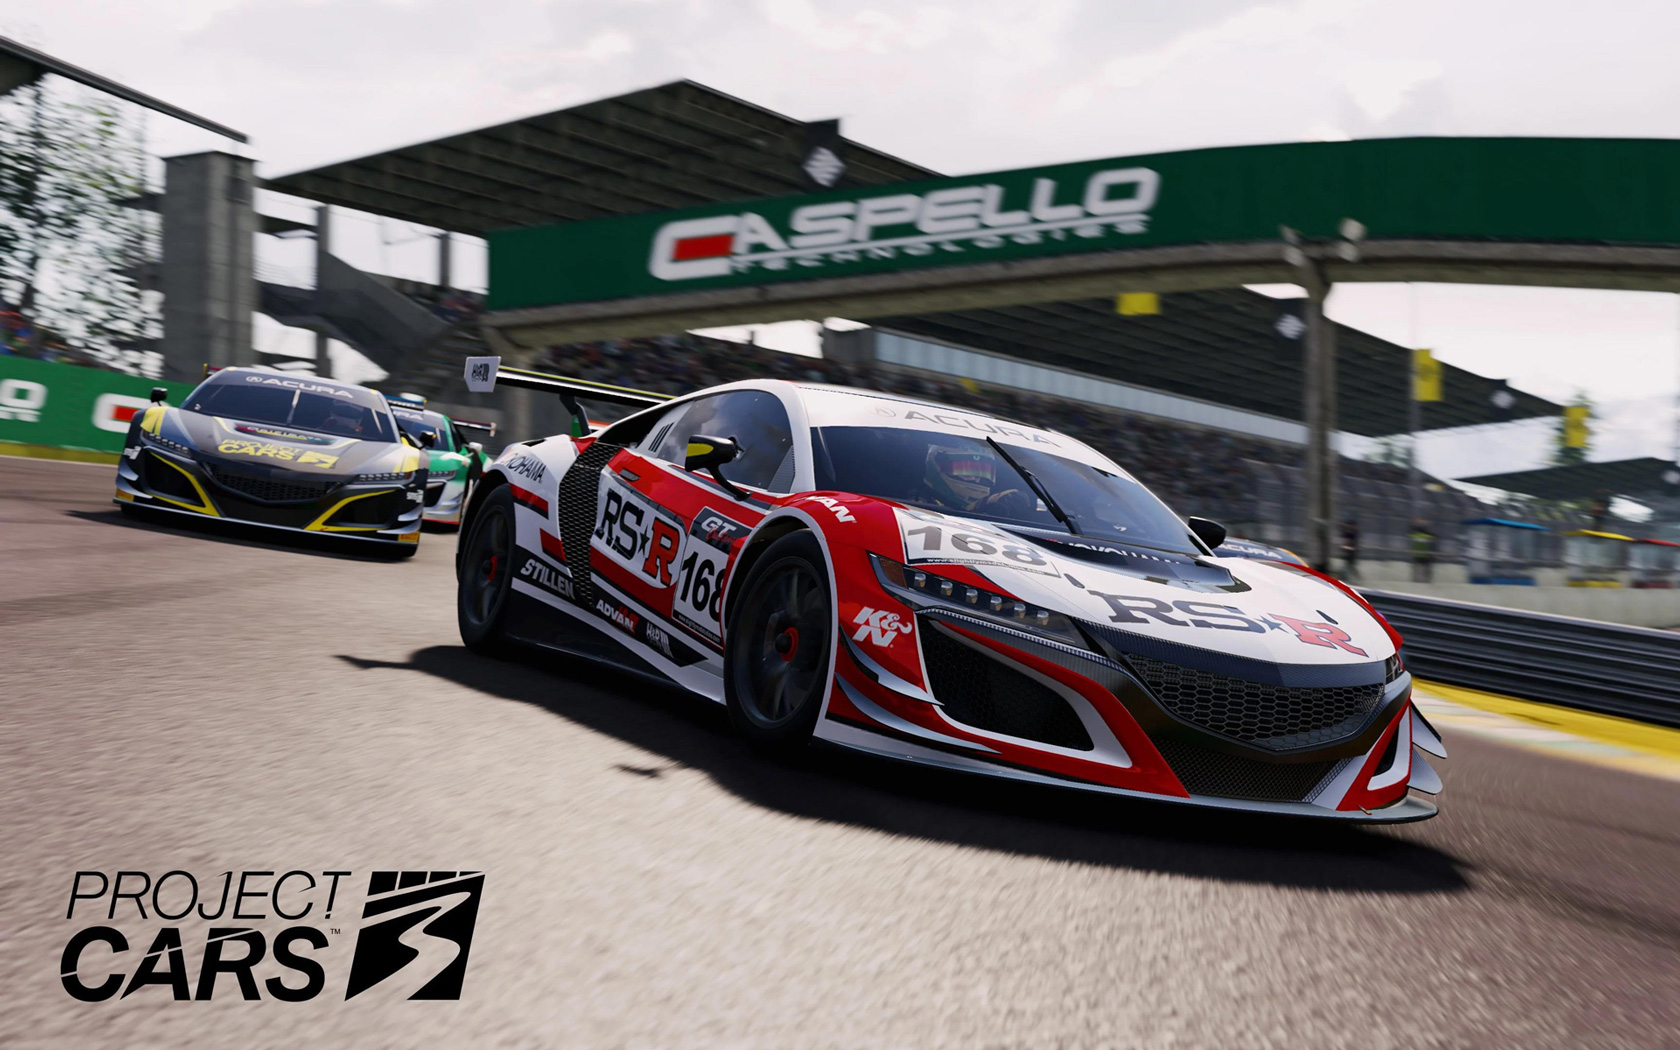 Free Project Cars 3 Wallpaper in 1680x1050